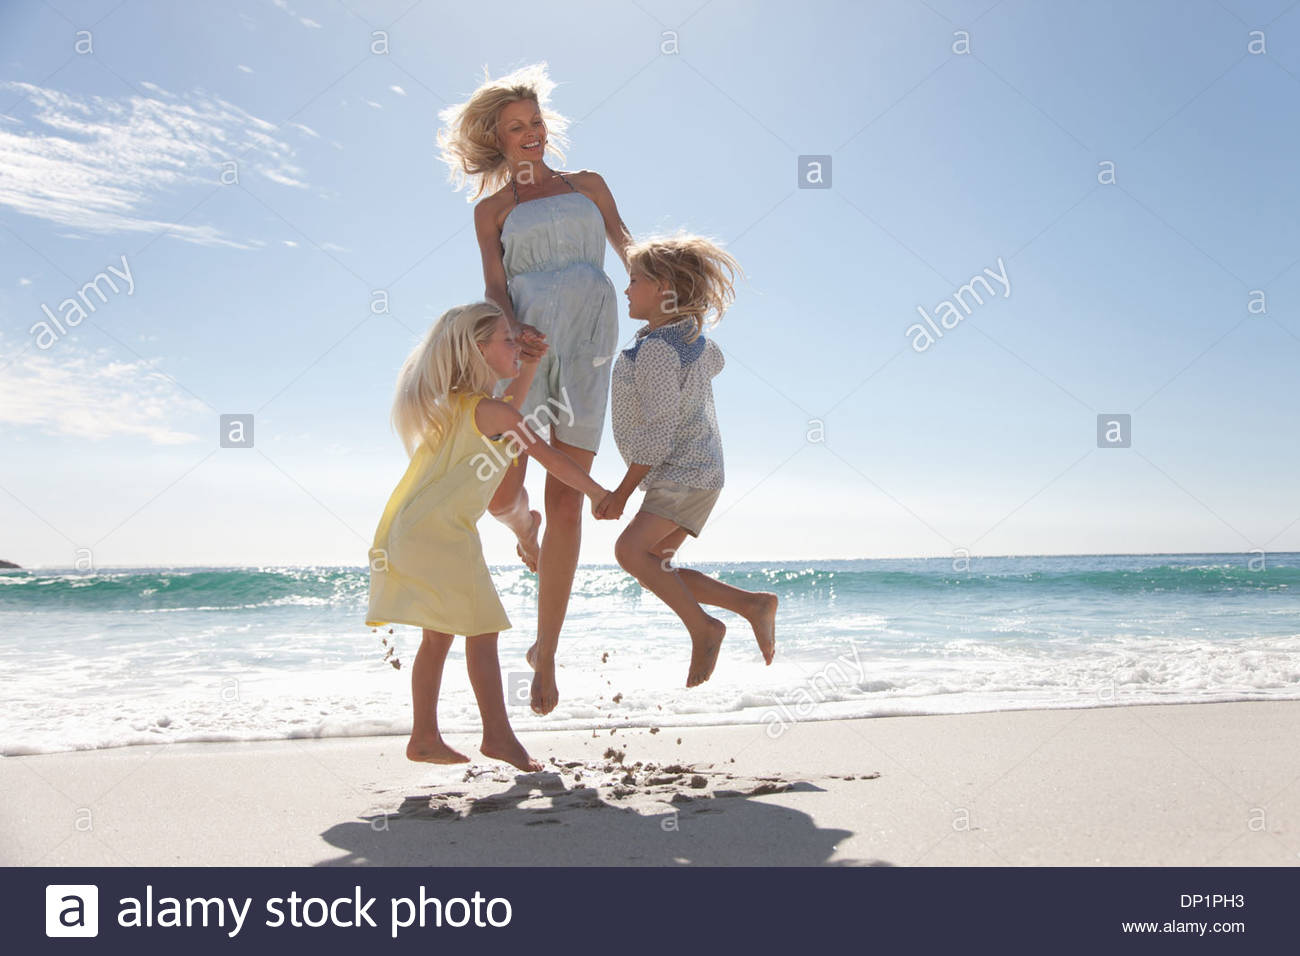 Family playing on beach Photo Stock